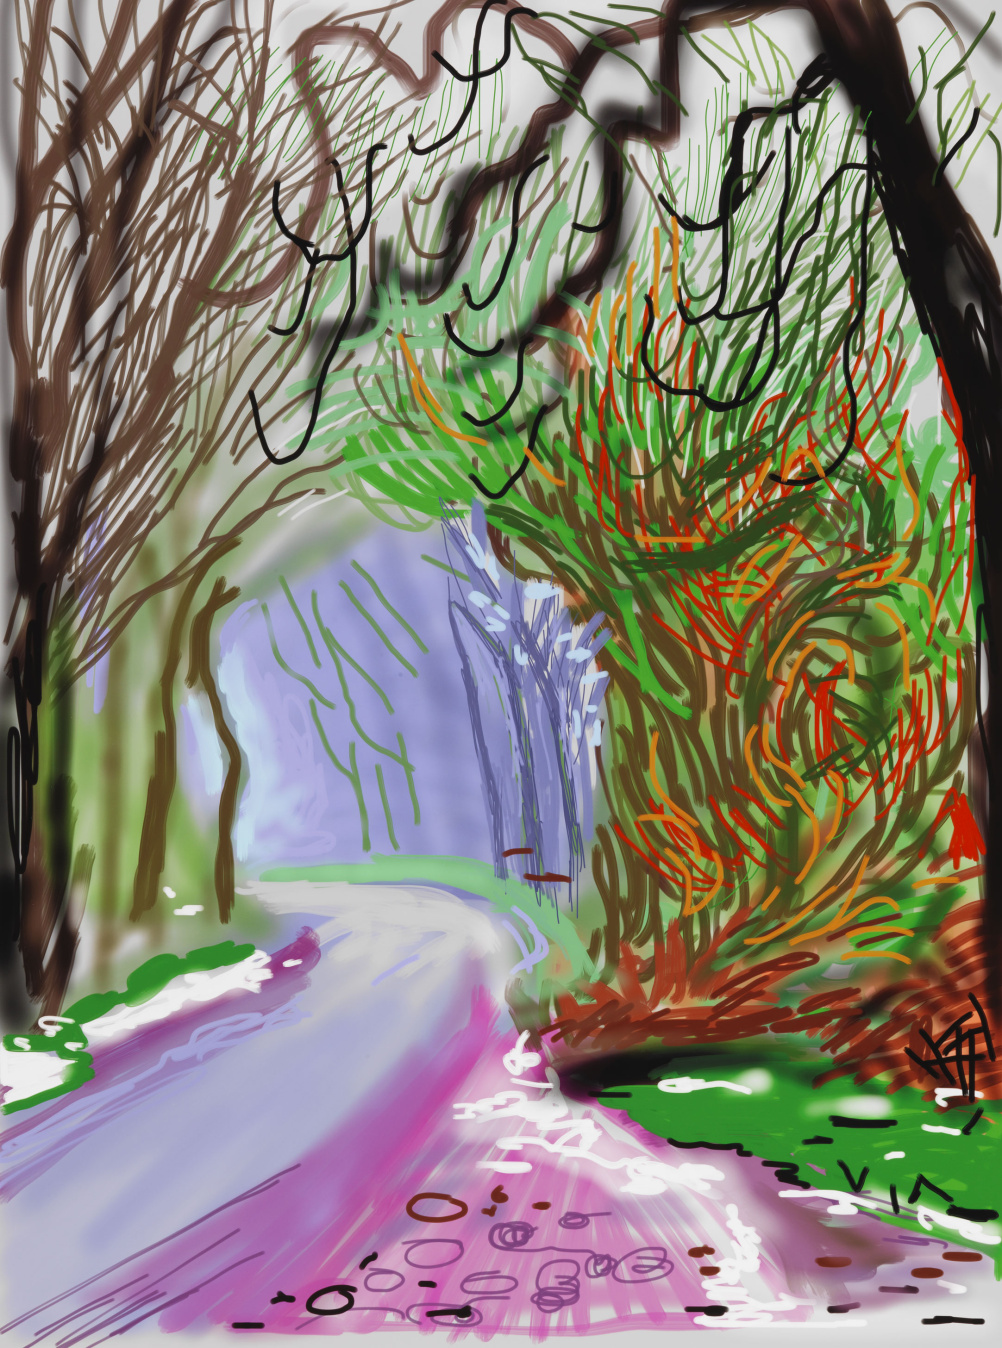 David Hockney, The Arrival of Spring in Woldgate, East Yorkshire in 2011 (twenty eleven) - 1 January 2011 iPad drawing printed on paper, edition 6 of 25